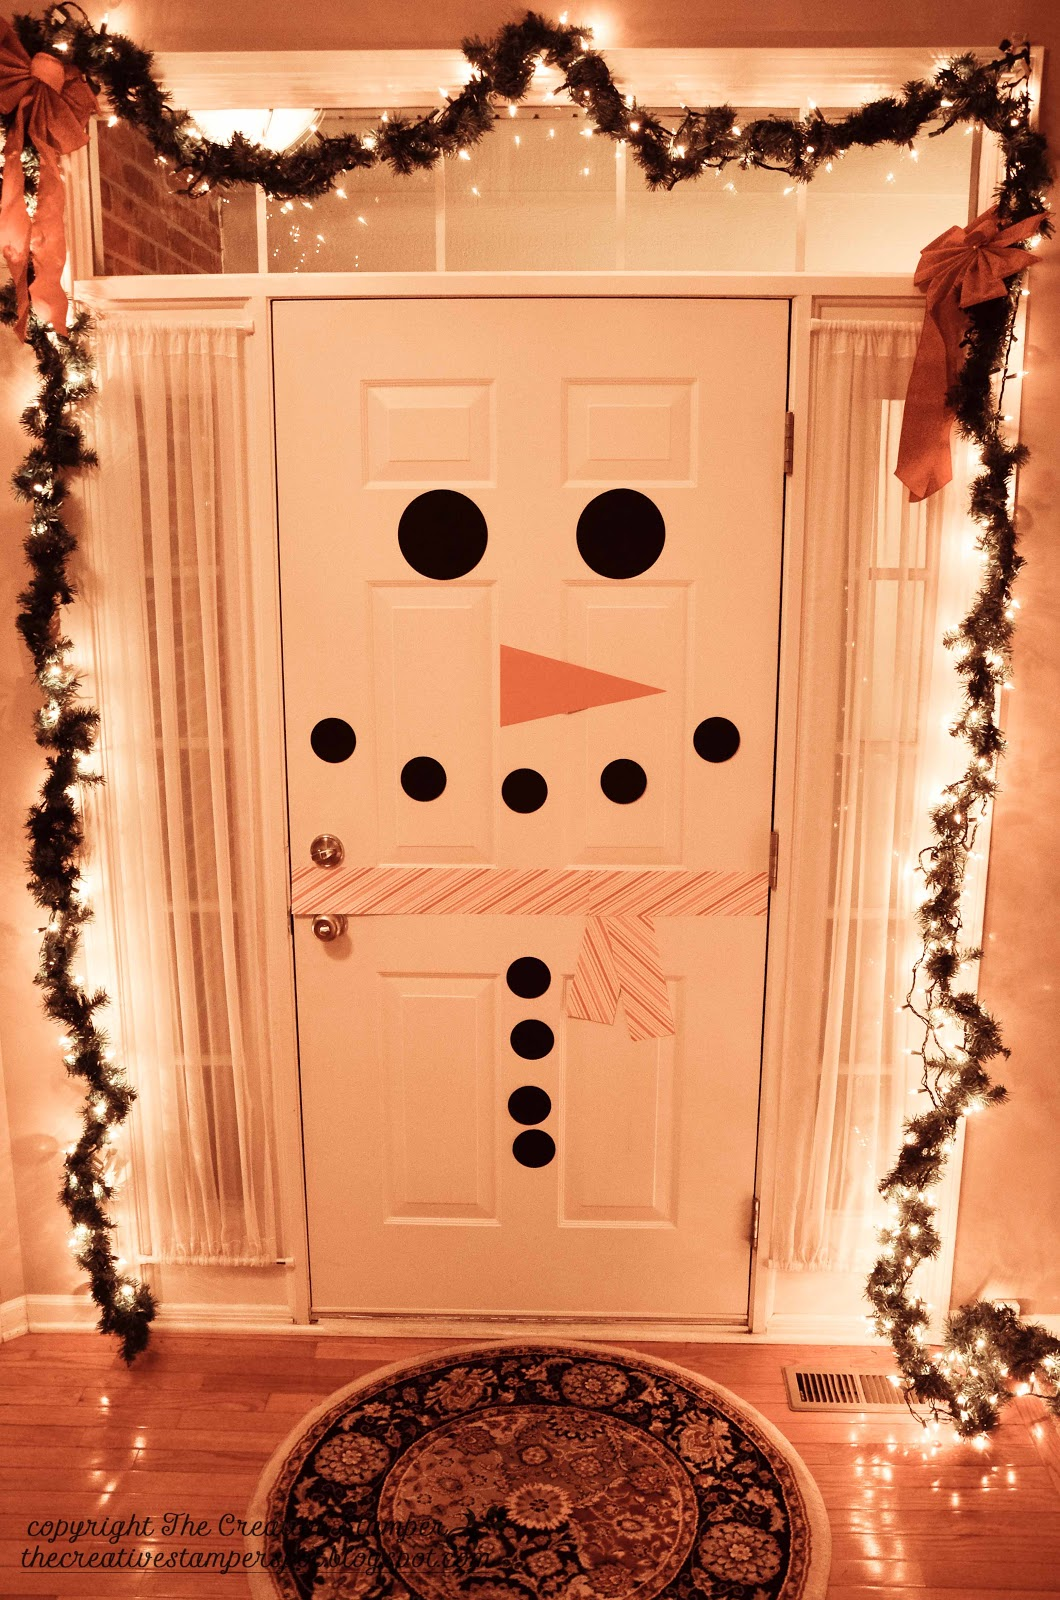 theres a snowman at the door